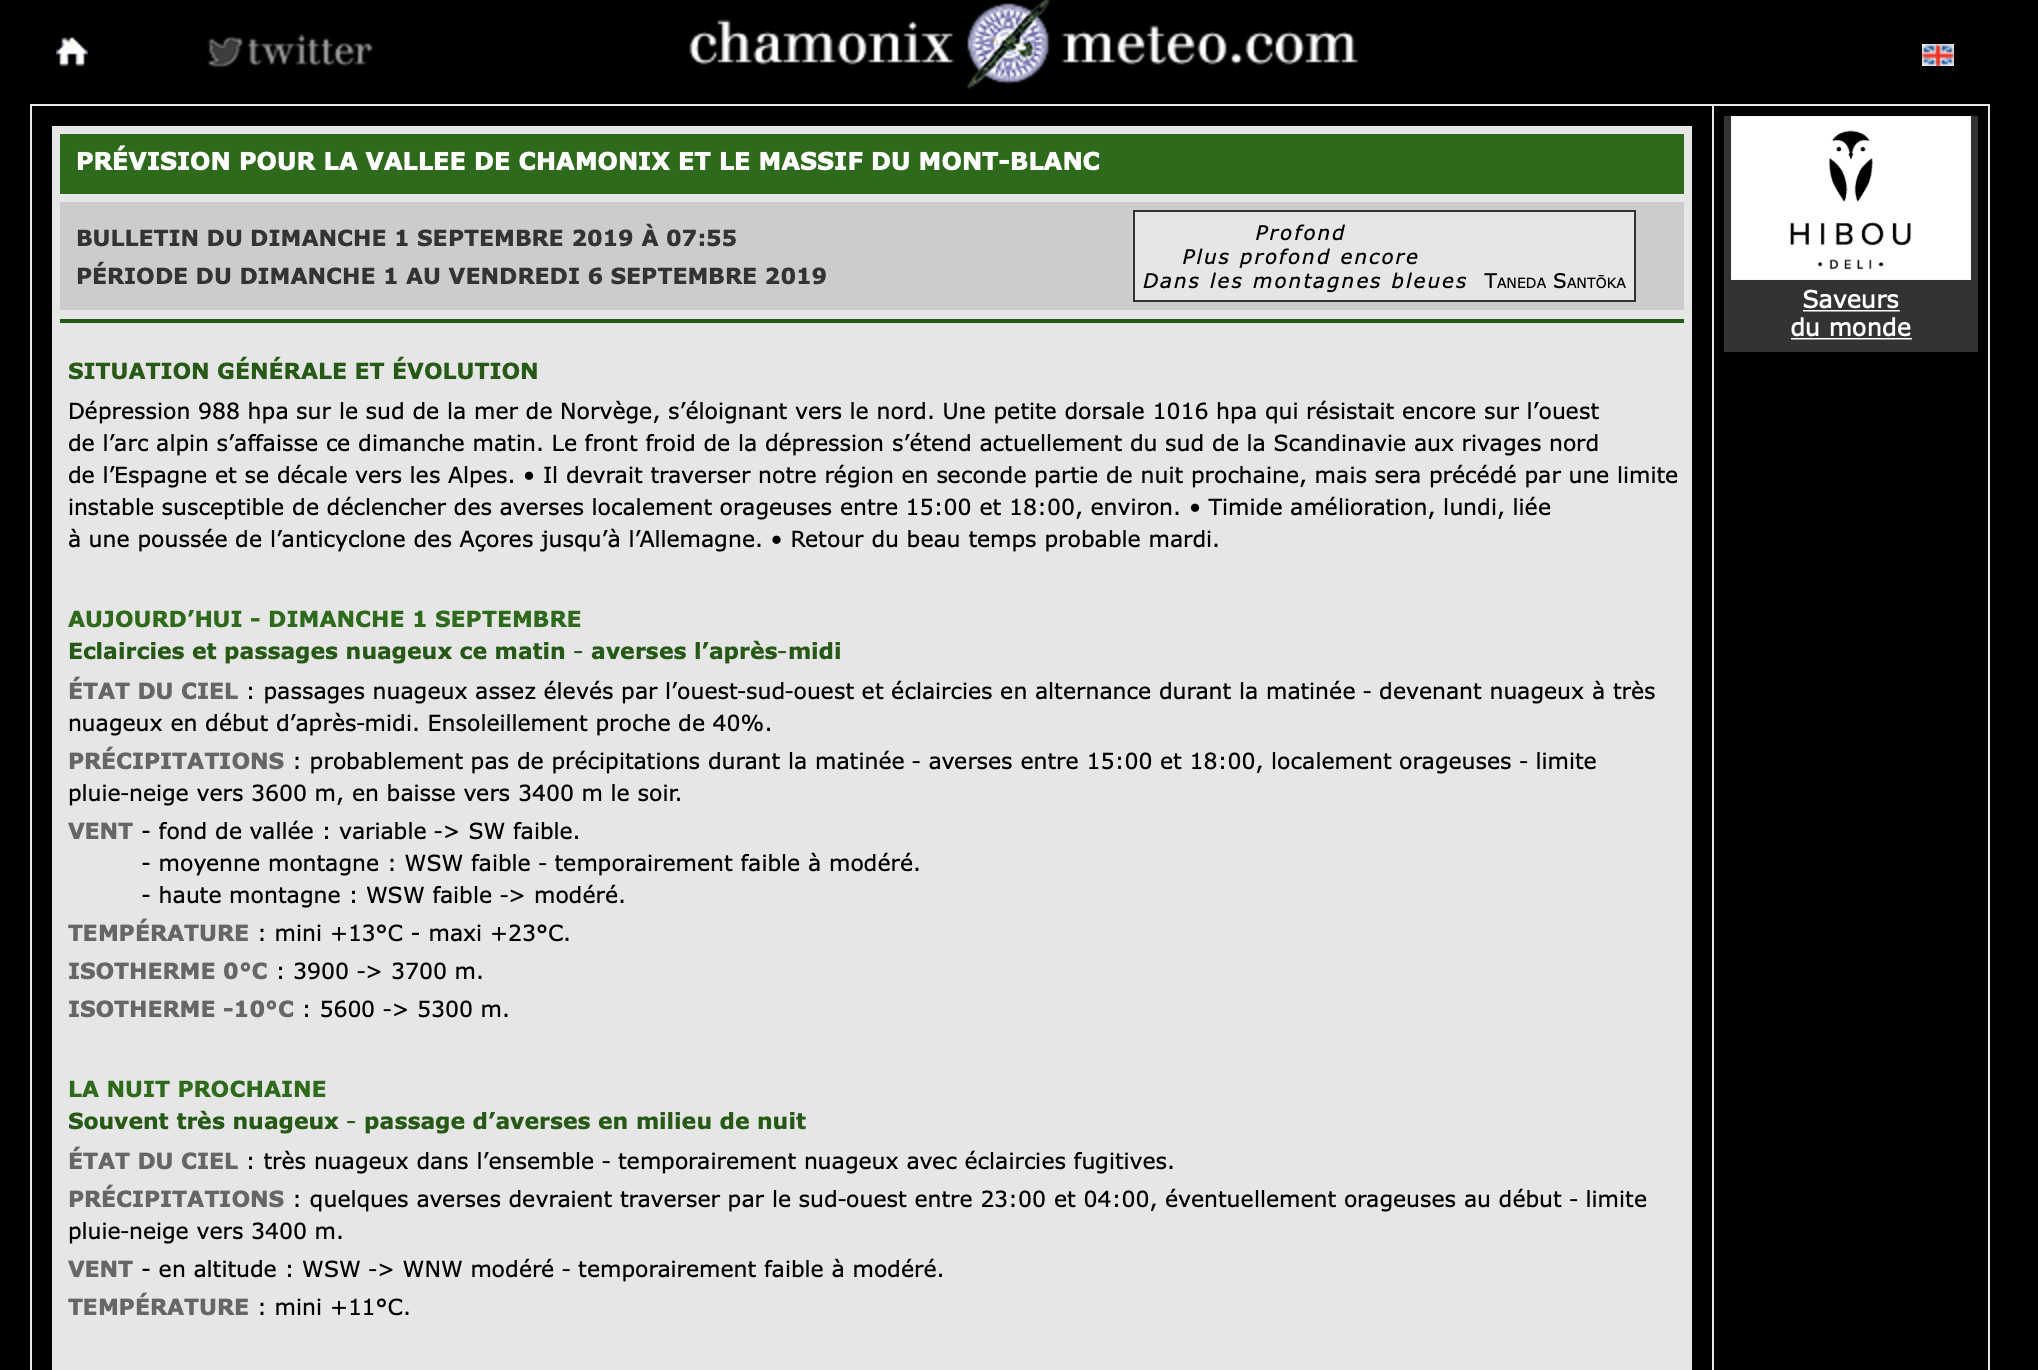 Forecast according to Chamonix Météo